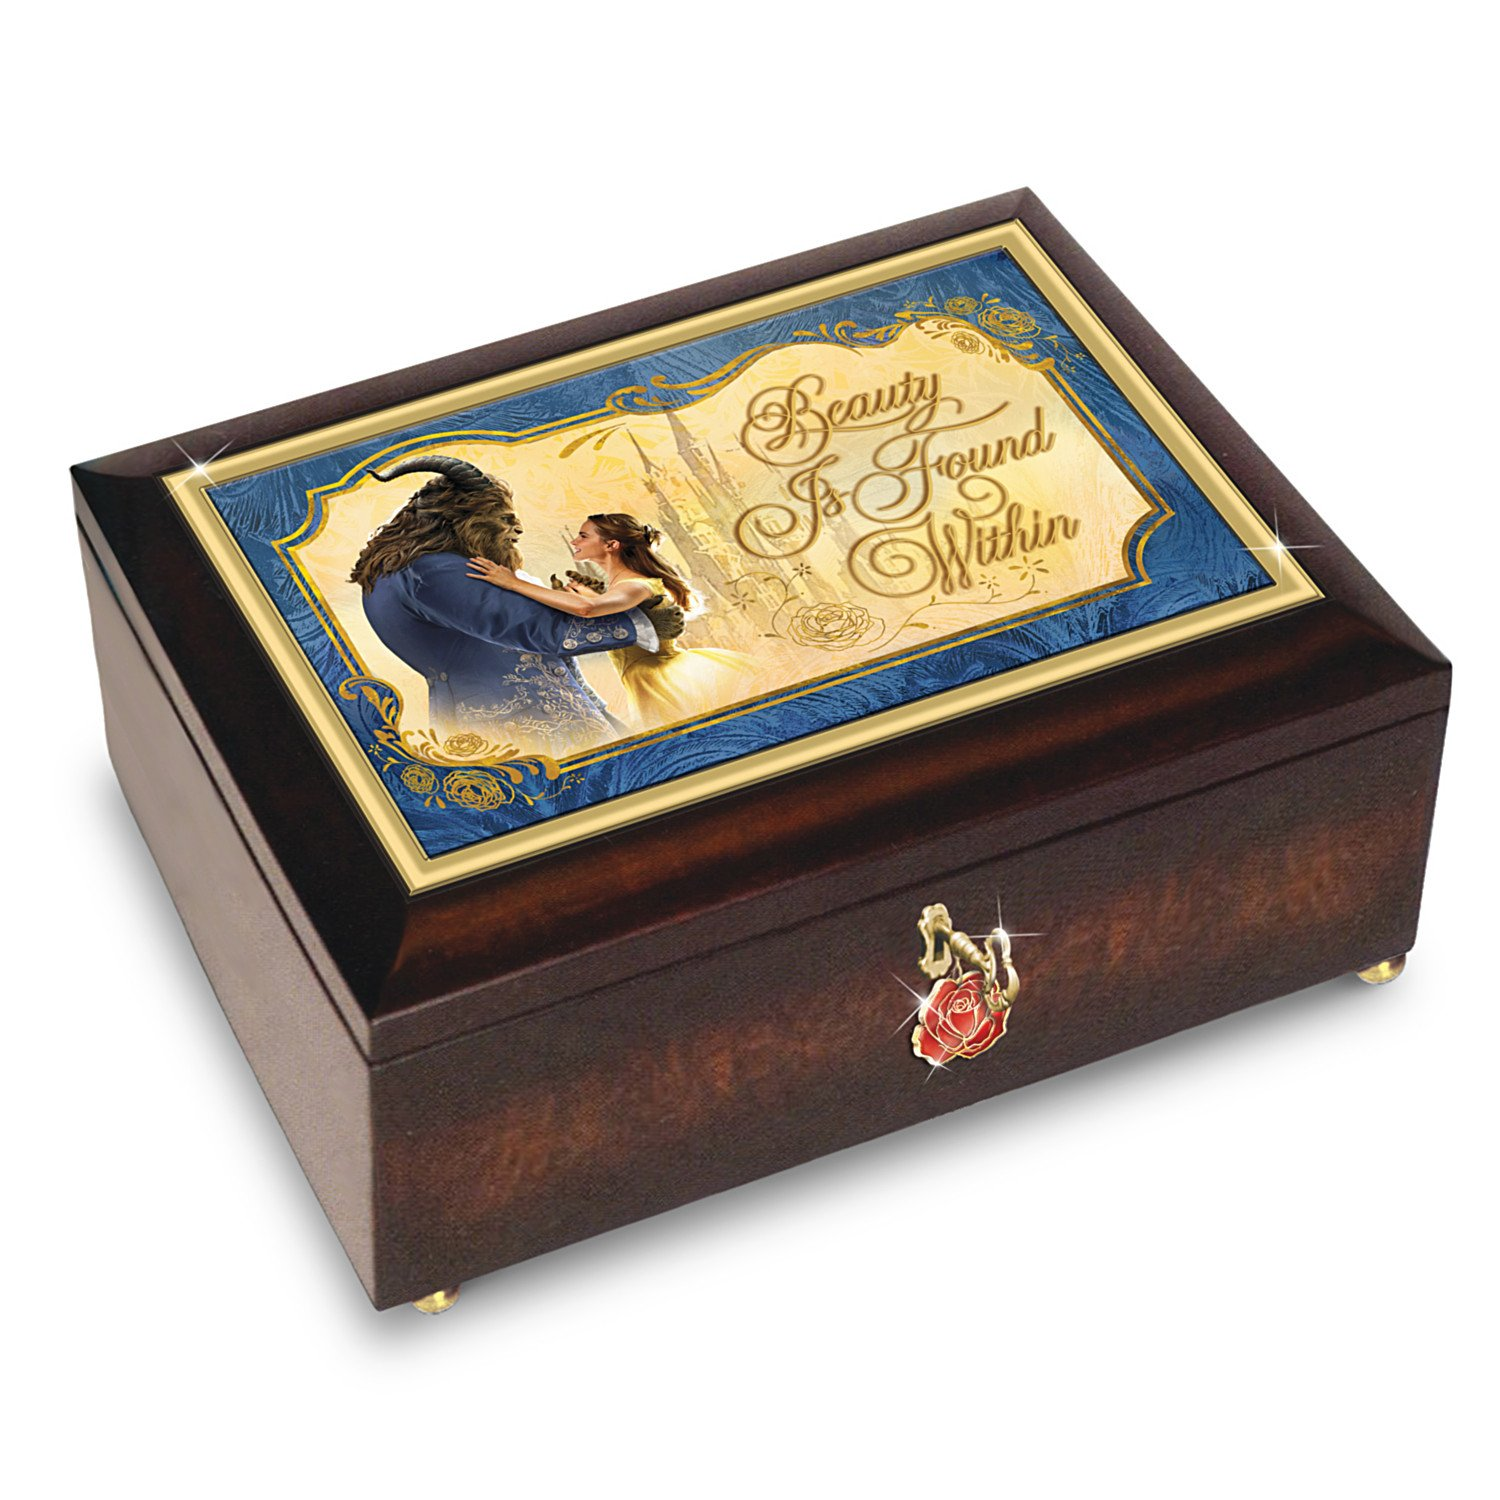 Bradford Exchange Disney Beauty and The Beast Music Box with Rose Charm The Bradford Exchange 01-26171-001